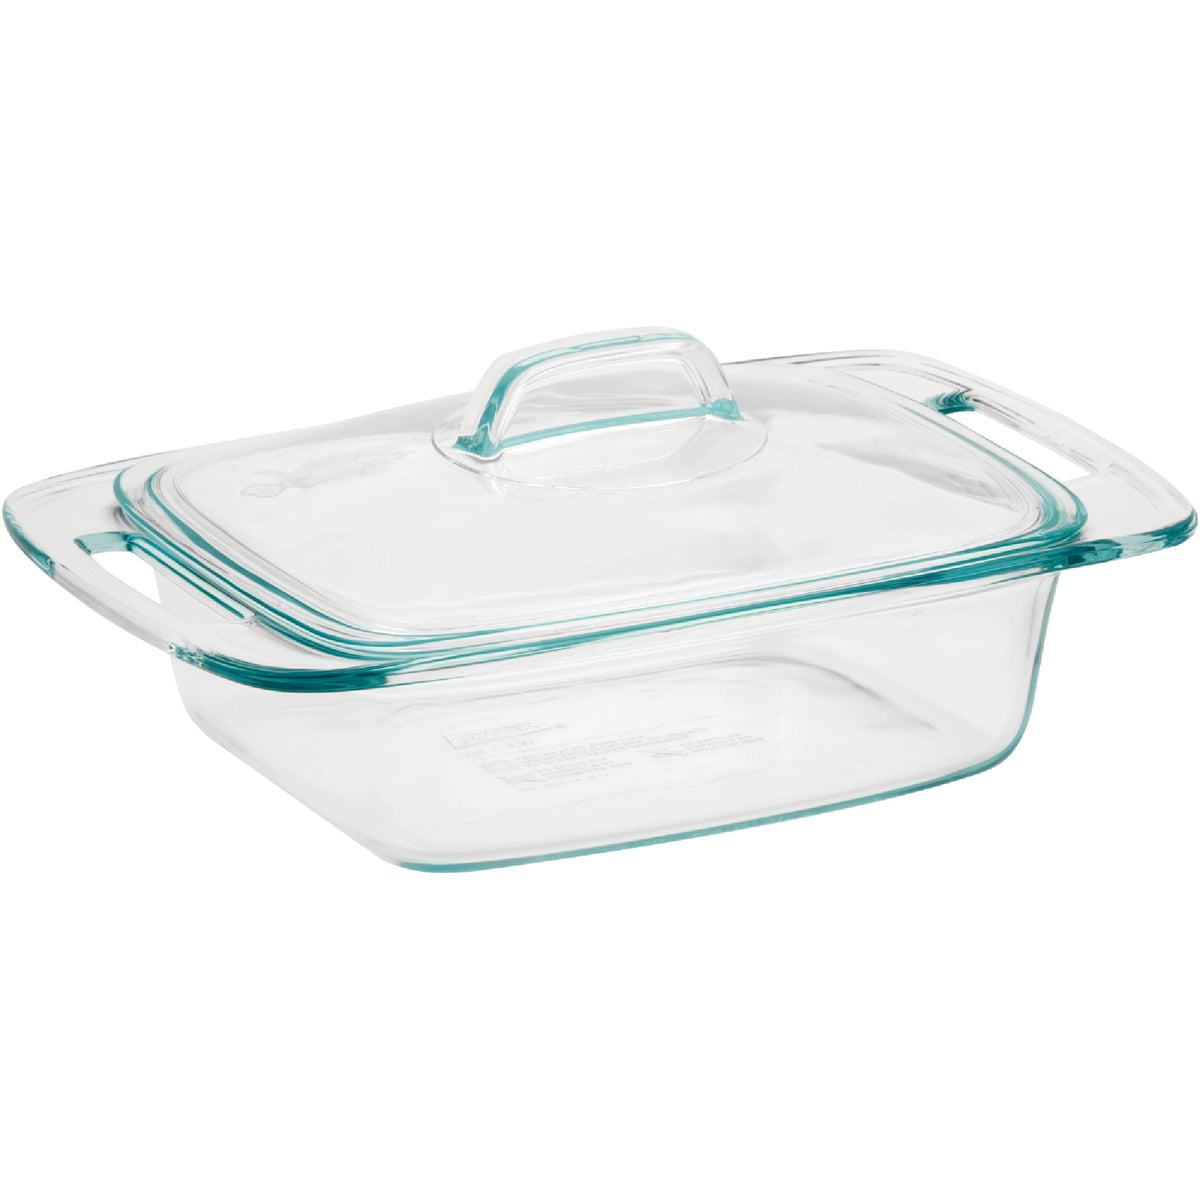 2QT CASSEROLE W/COVER - 1085801 by World Kitchen